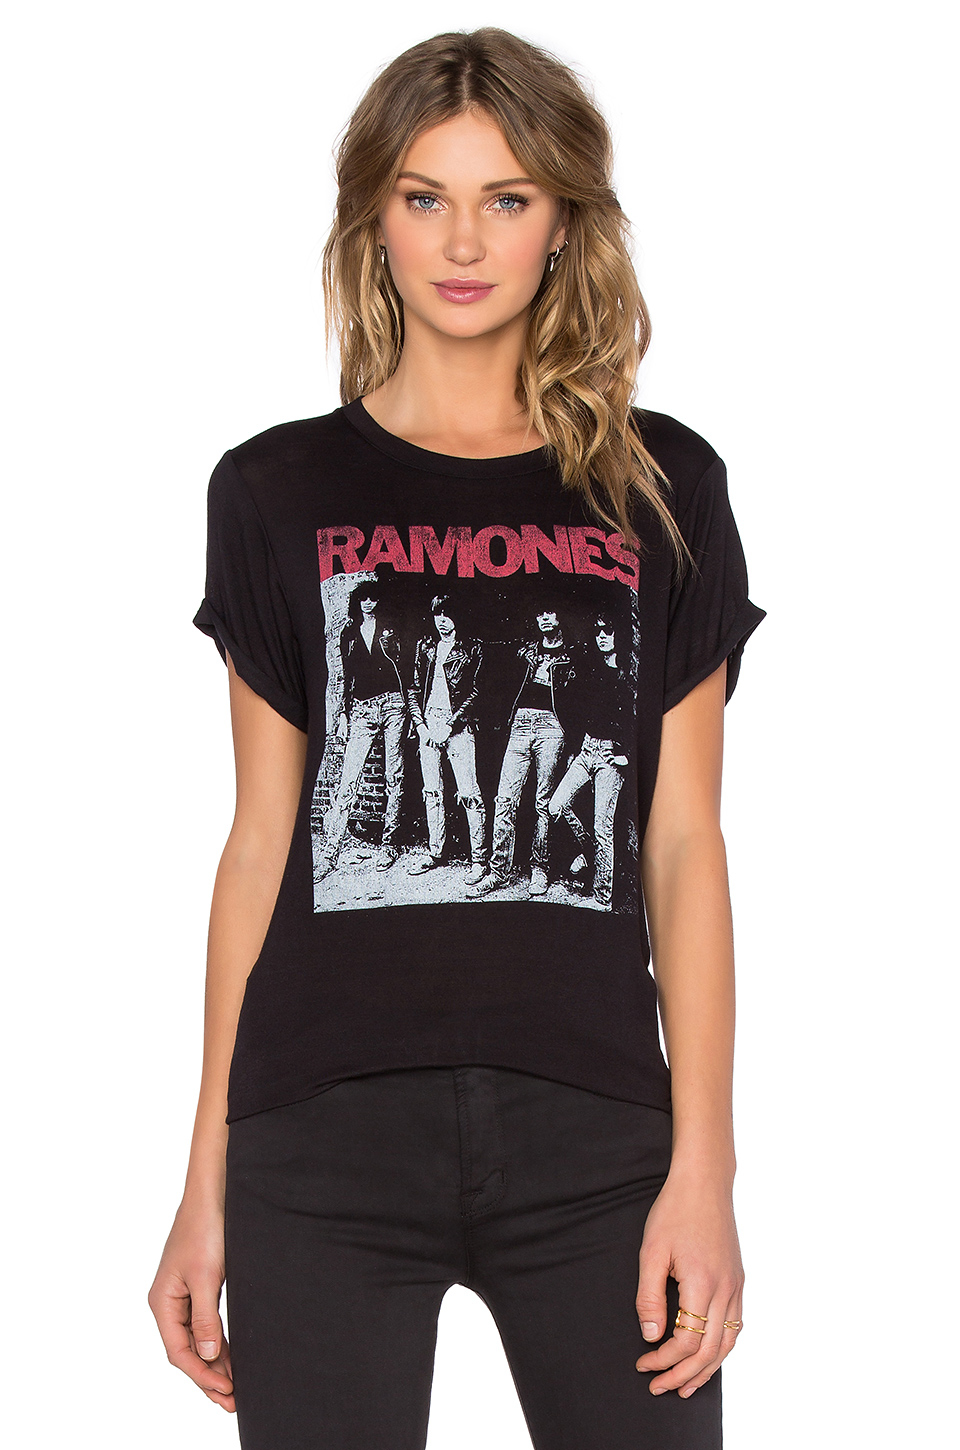 The Ramones Rocket To Russia